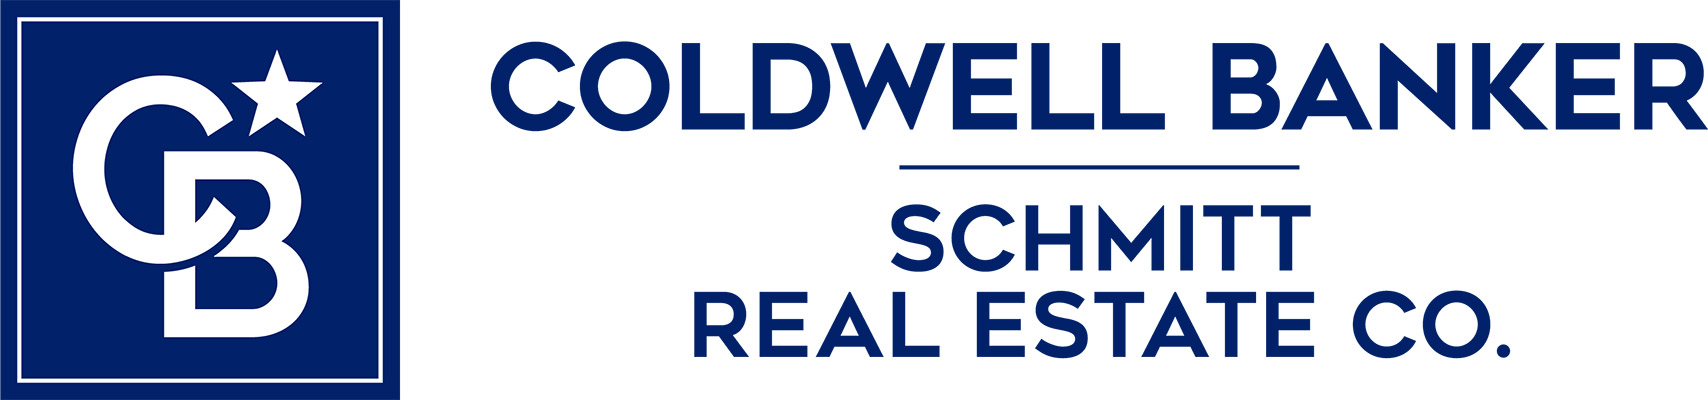 David Wiley - Coldwell Banker